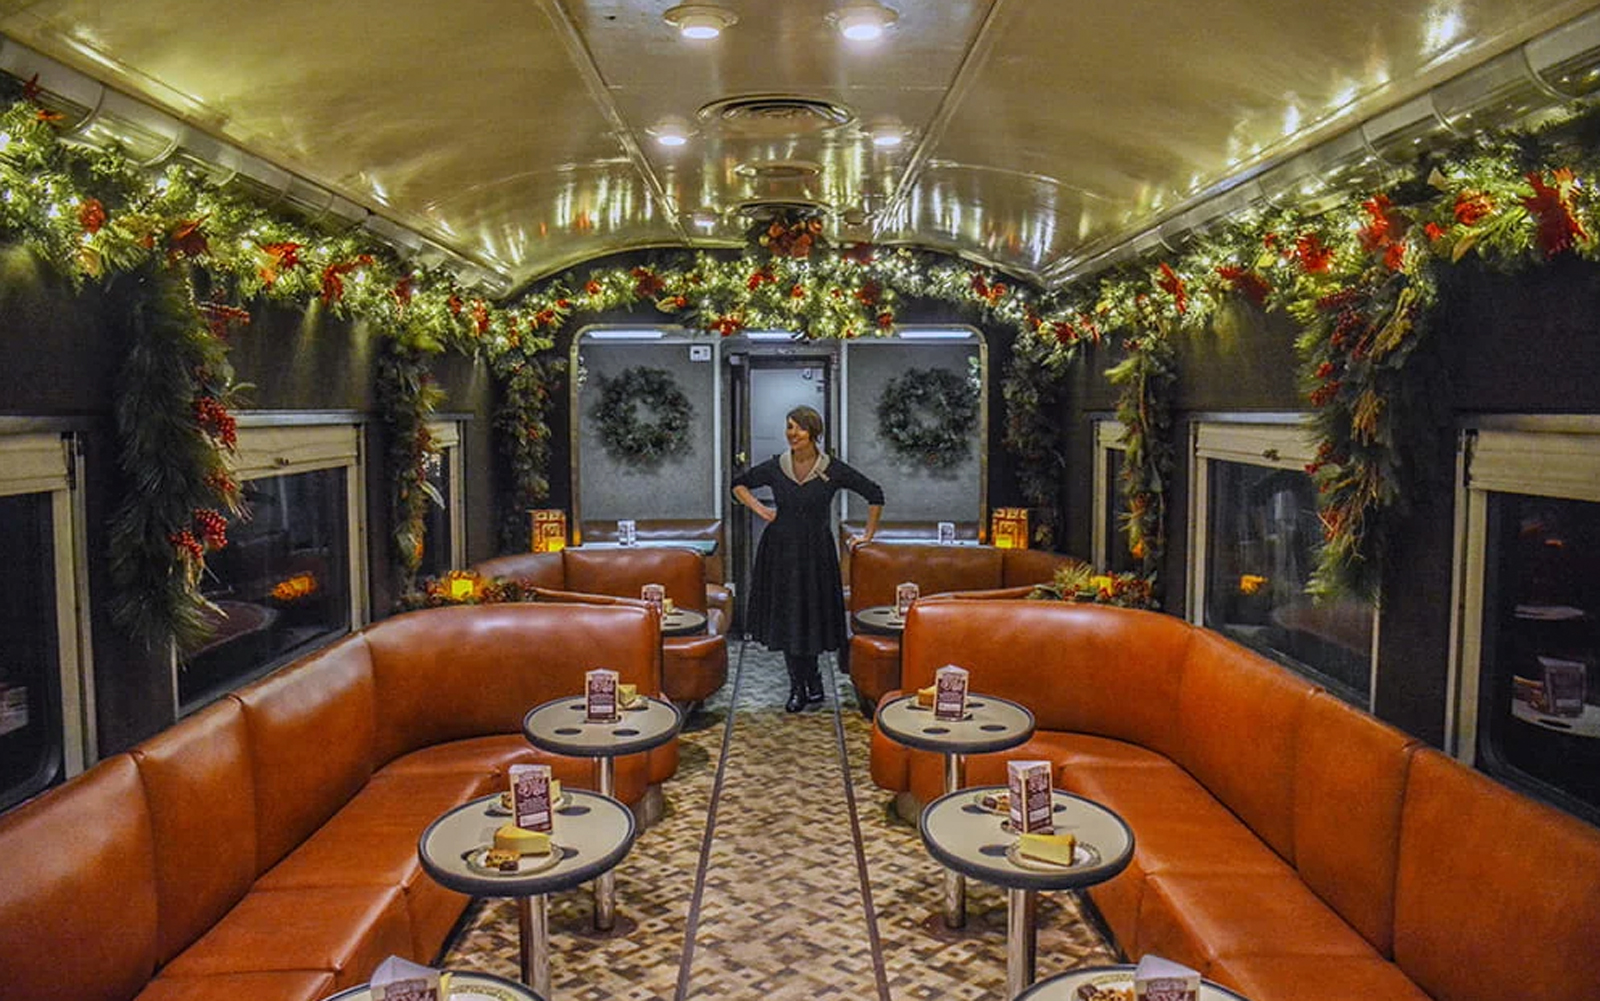 Tennessee Valley Railroad vintage train car